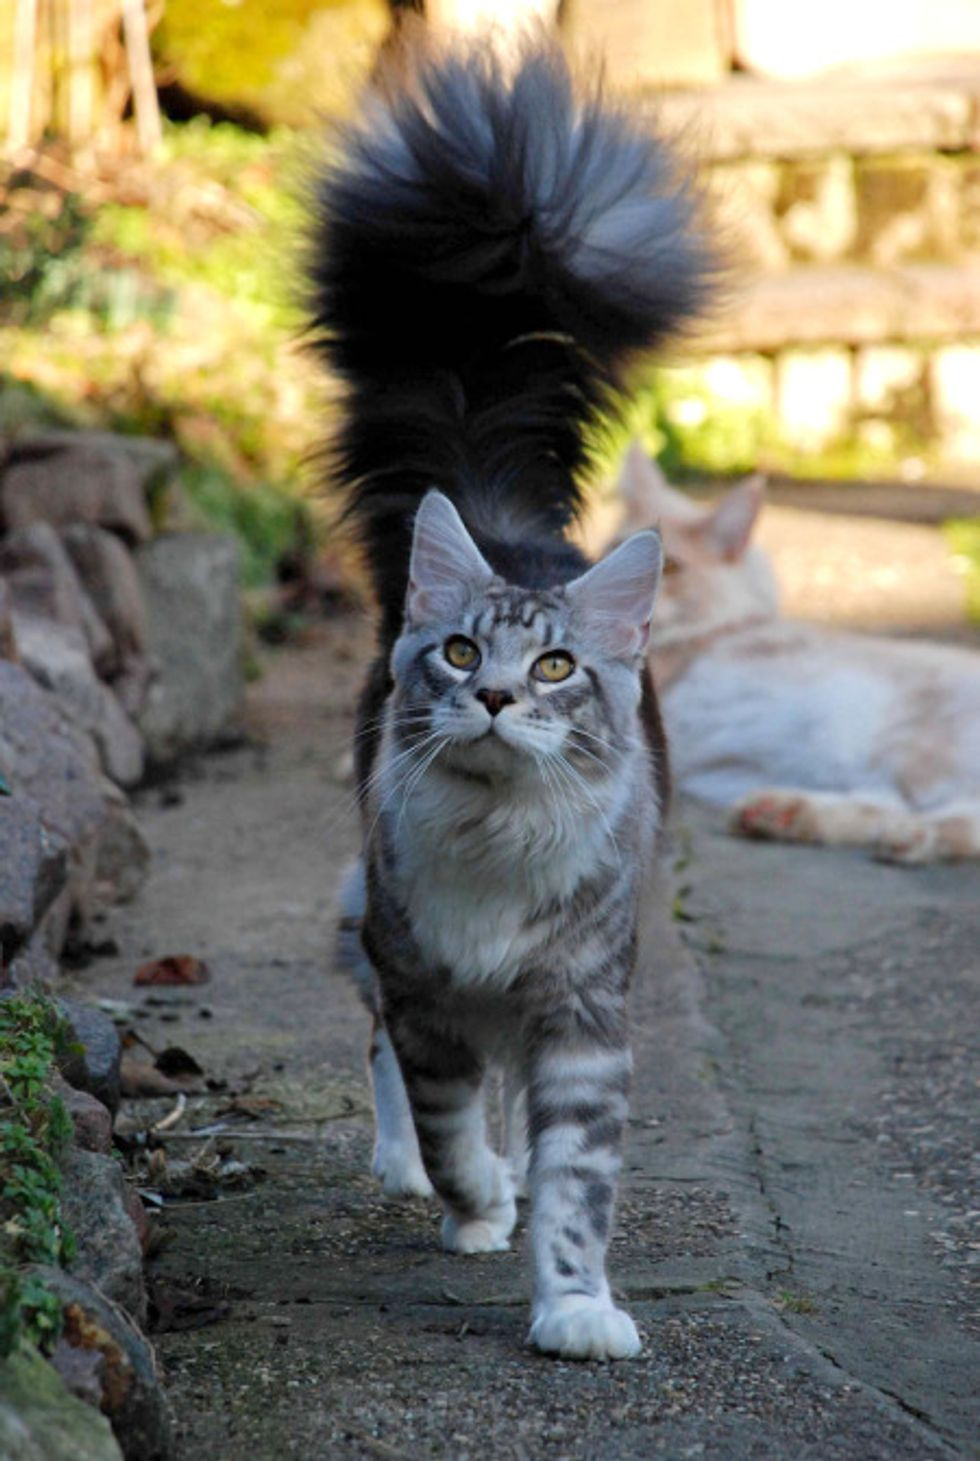 Cat with a Magnificent Tail